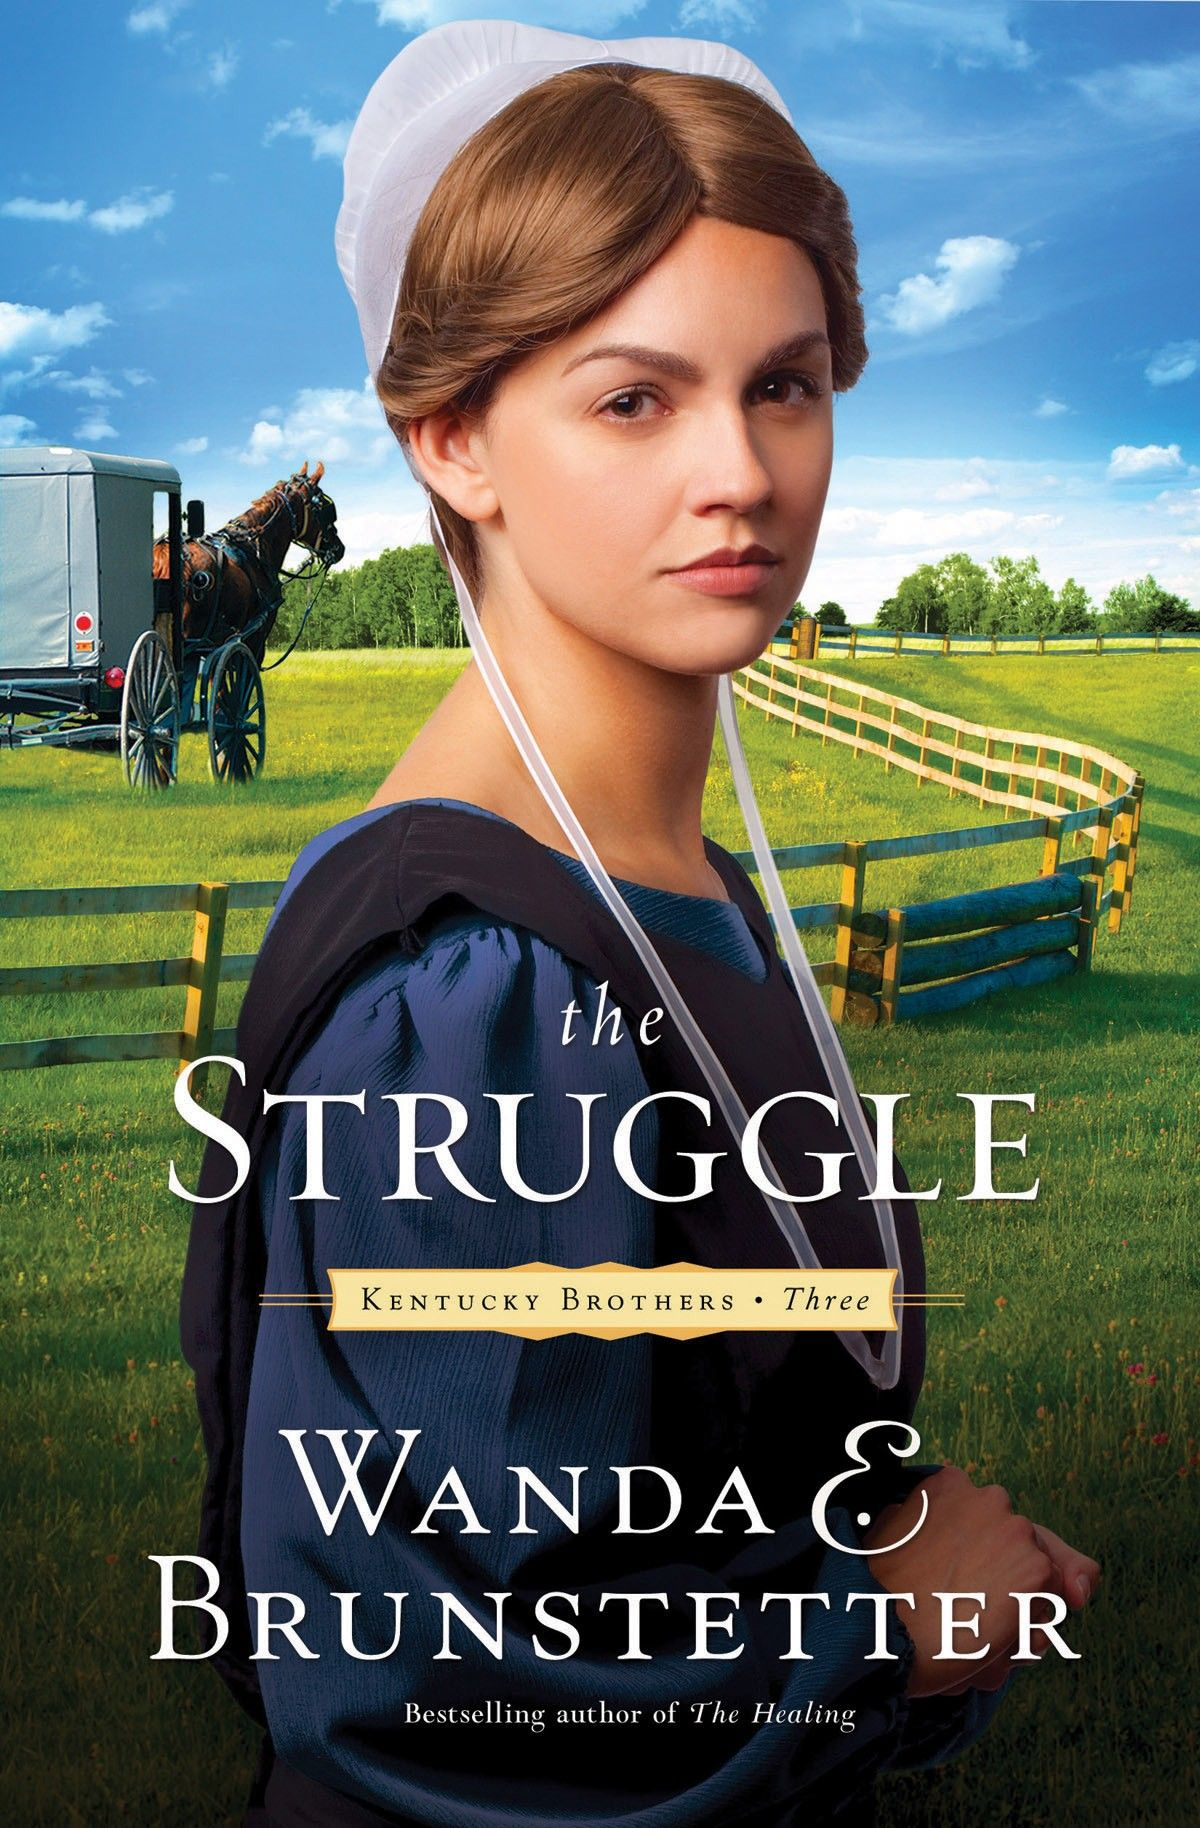 For Amish fiction, #WandaBrunstetter does a great job.